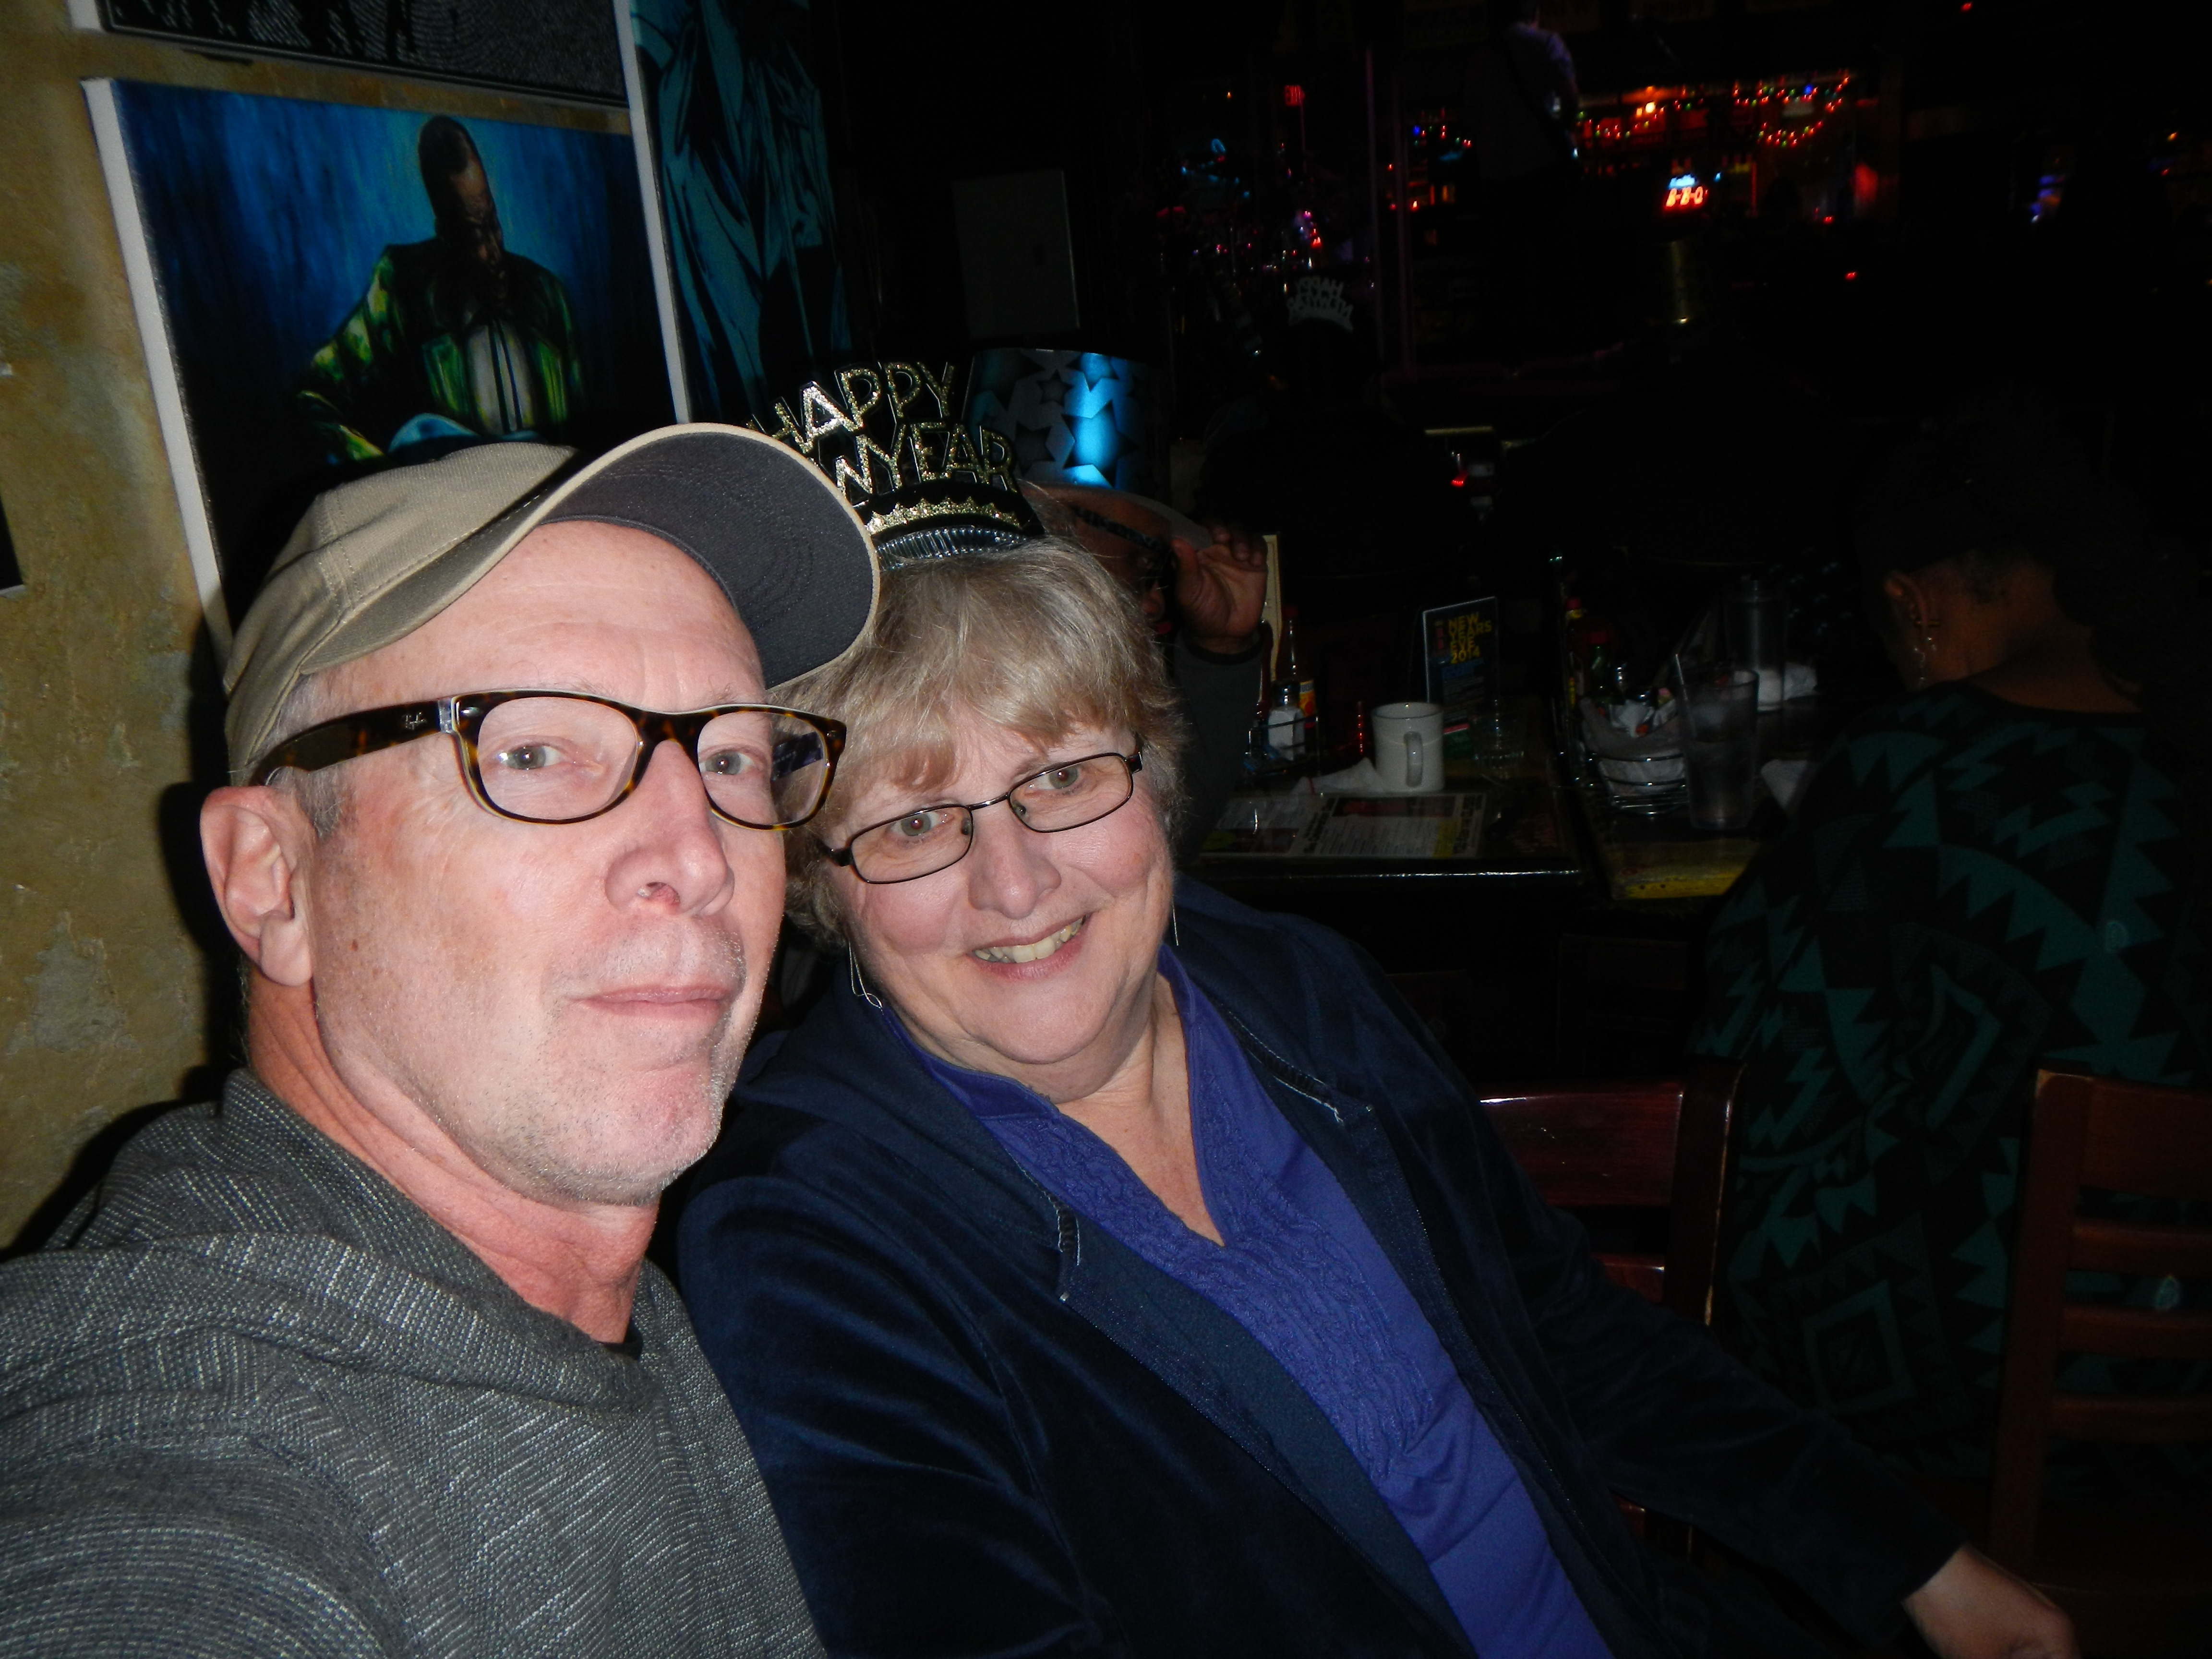 meet fort gaines singles Find meetups and meet people in your local community who share your interests meetups in fort collins the breakfast club/ncc for singles 50+ meetup group.